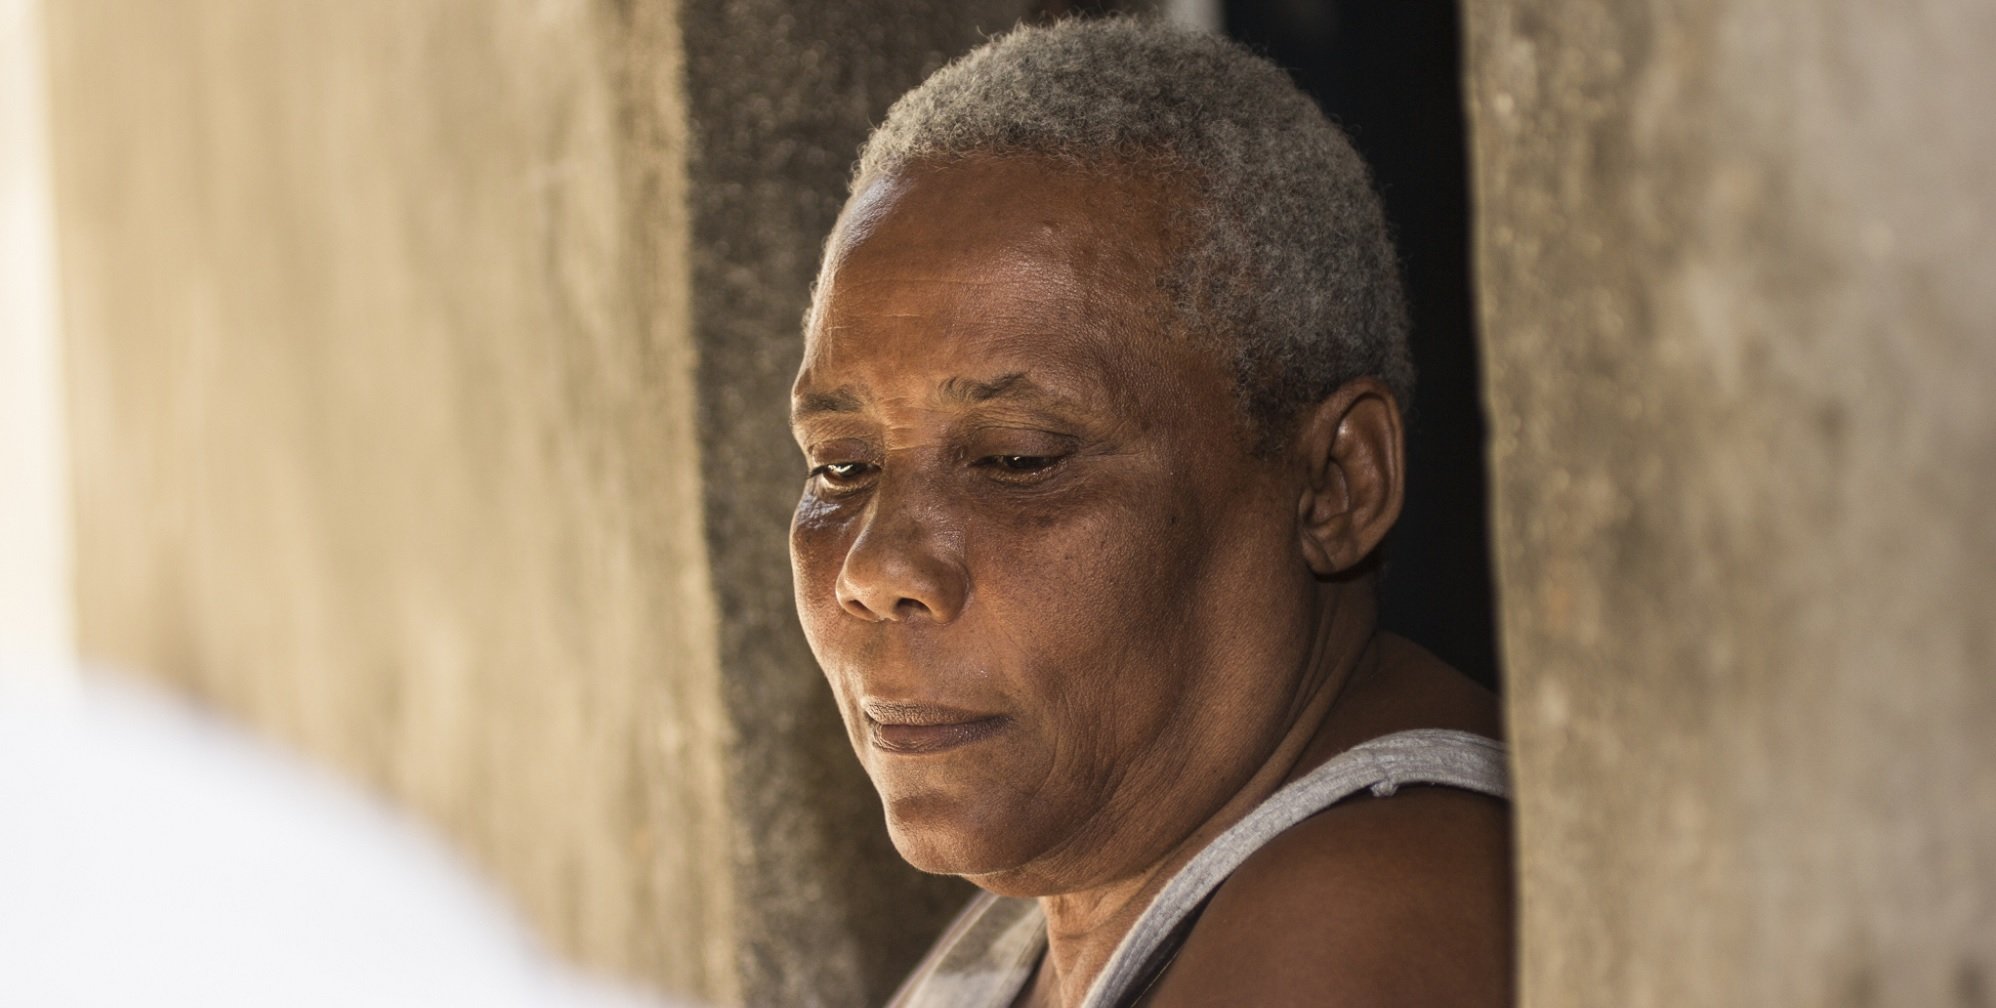 Marie was once sacked from her job in Haiti because her employer thought she was too old (c) Joseph Jn-Florley/HelpAge International